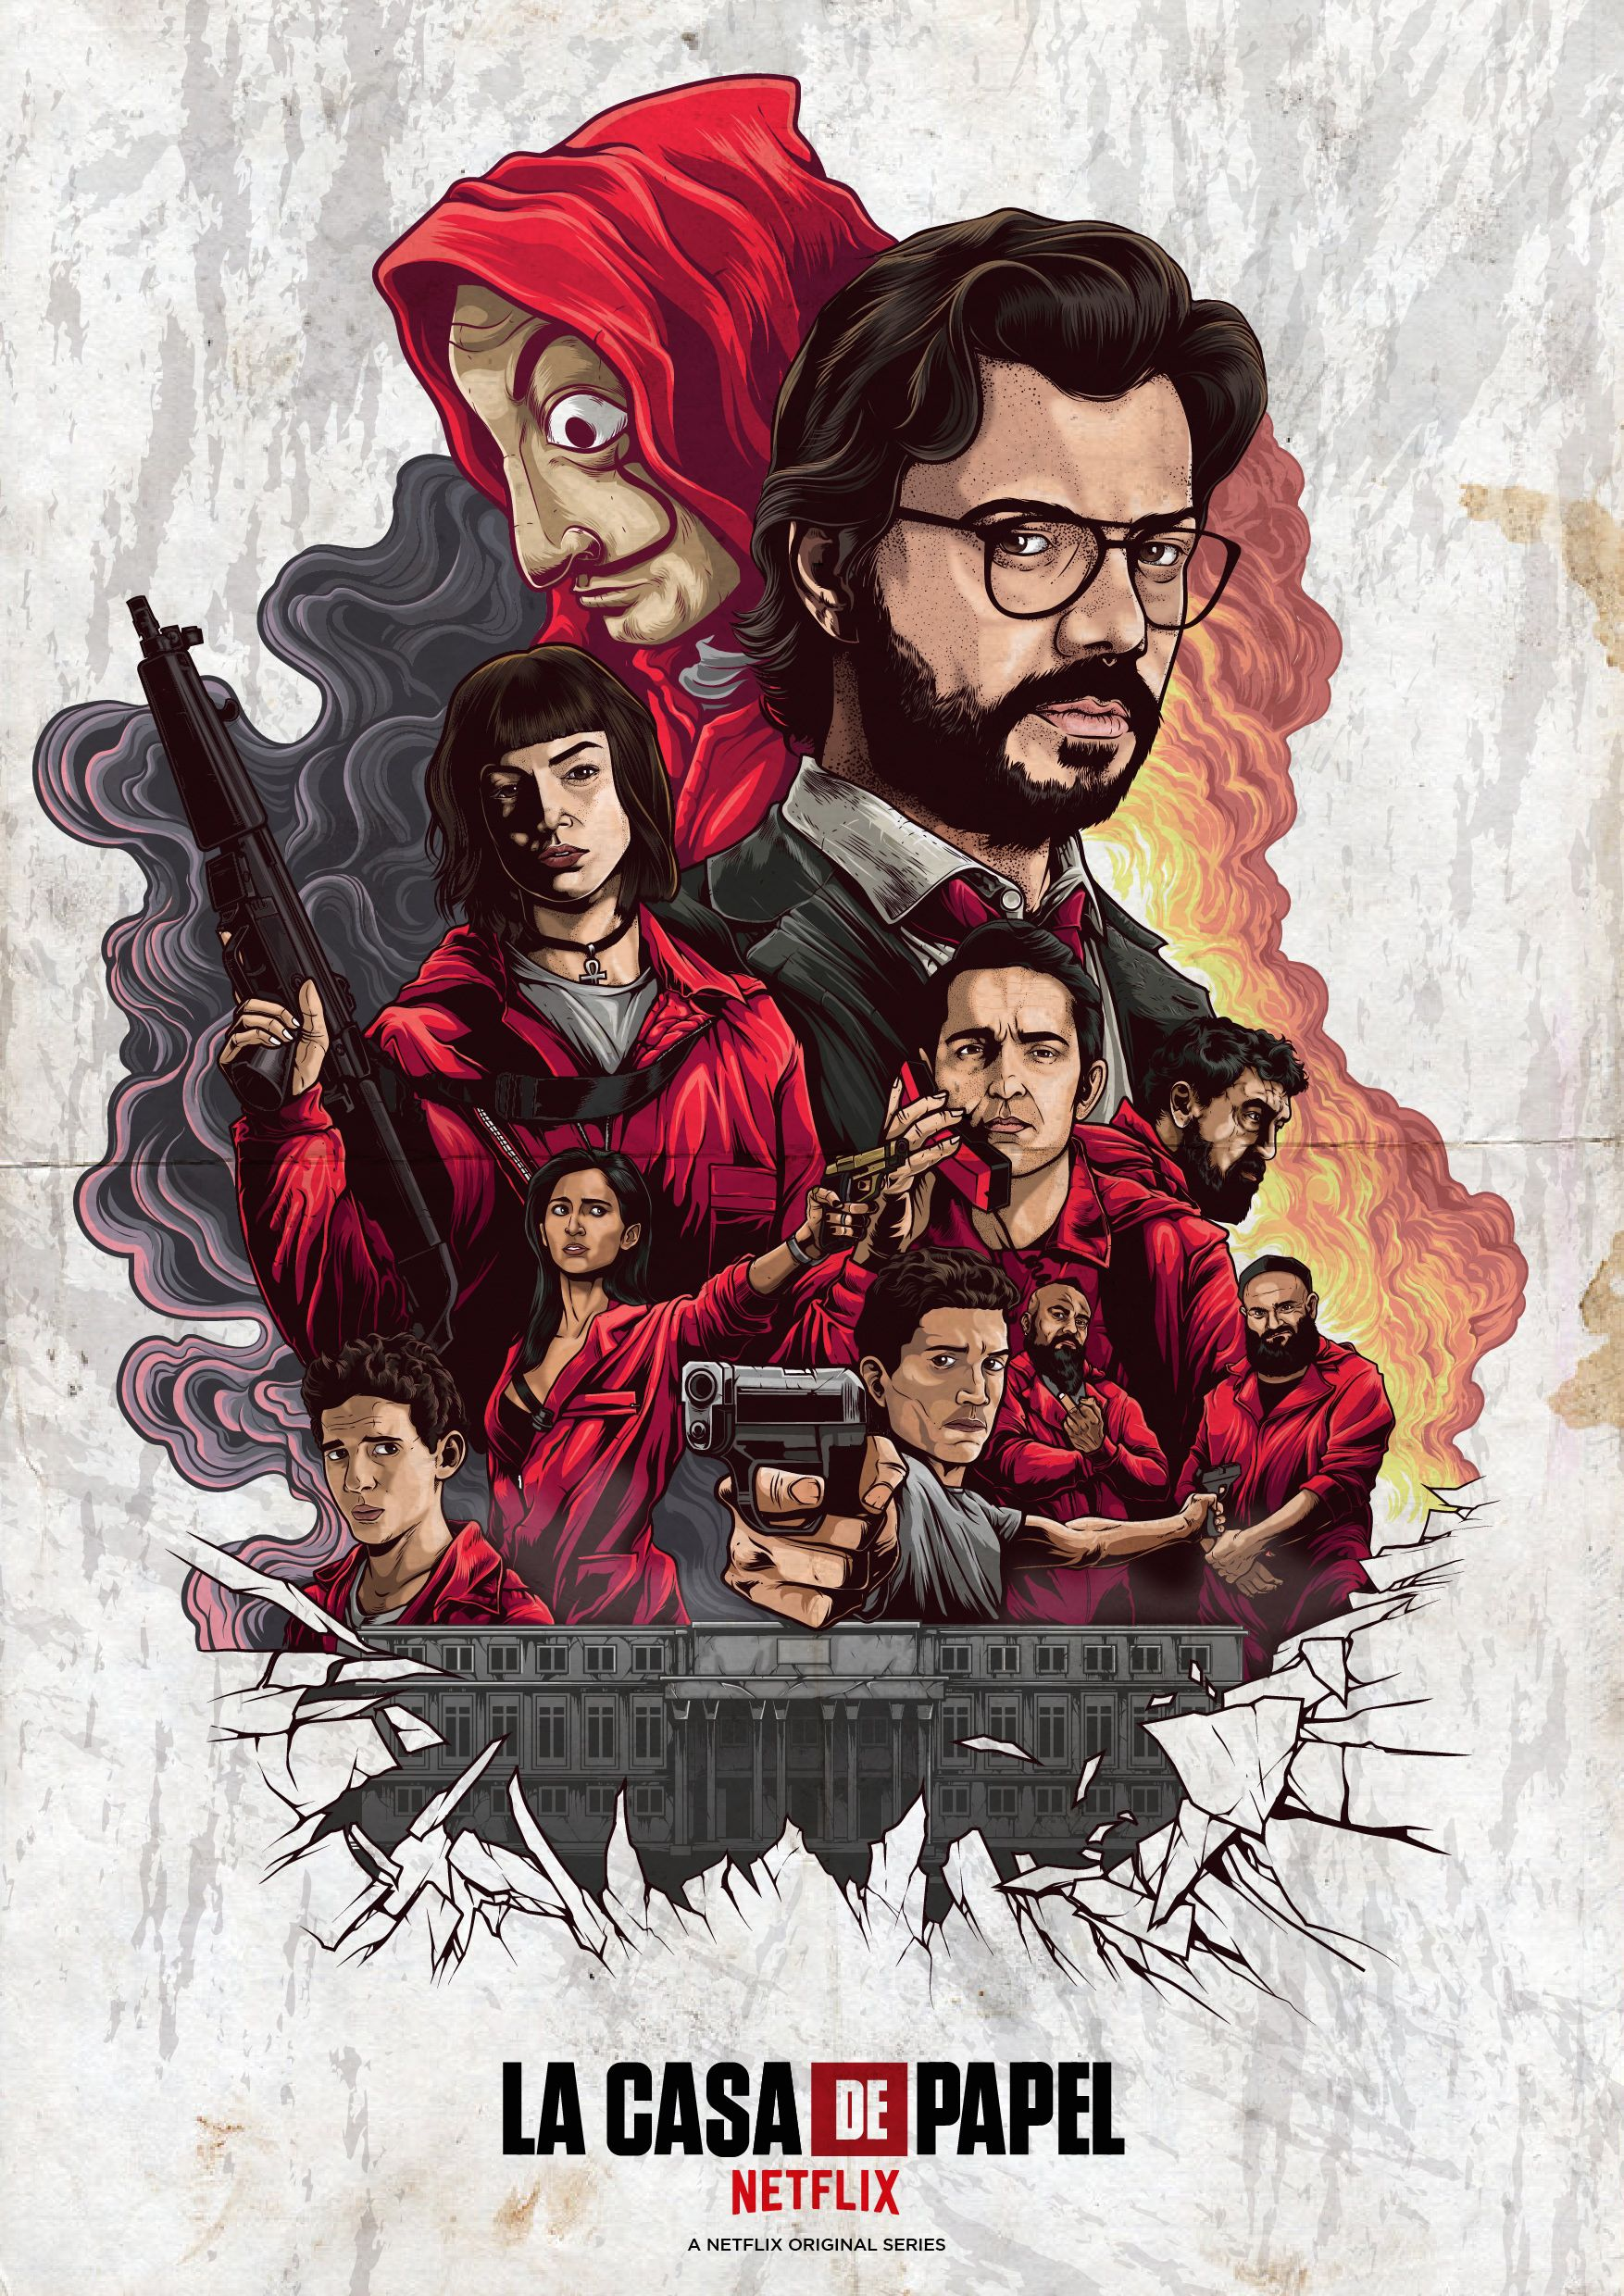 Money Heist Wallpaper Iphone Kolpaper Awesome Free Hd Wallpapers